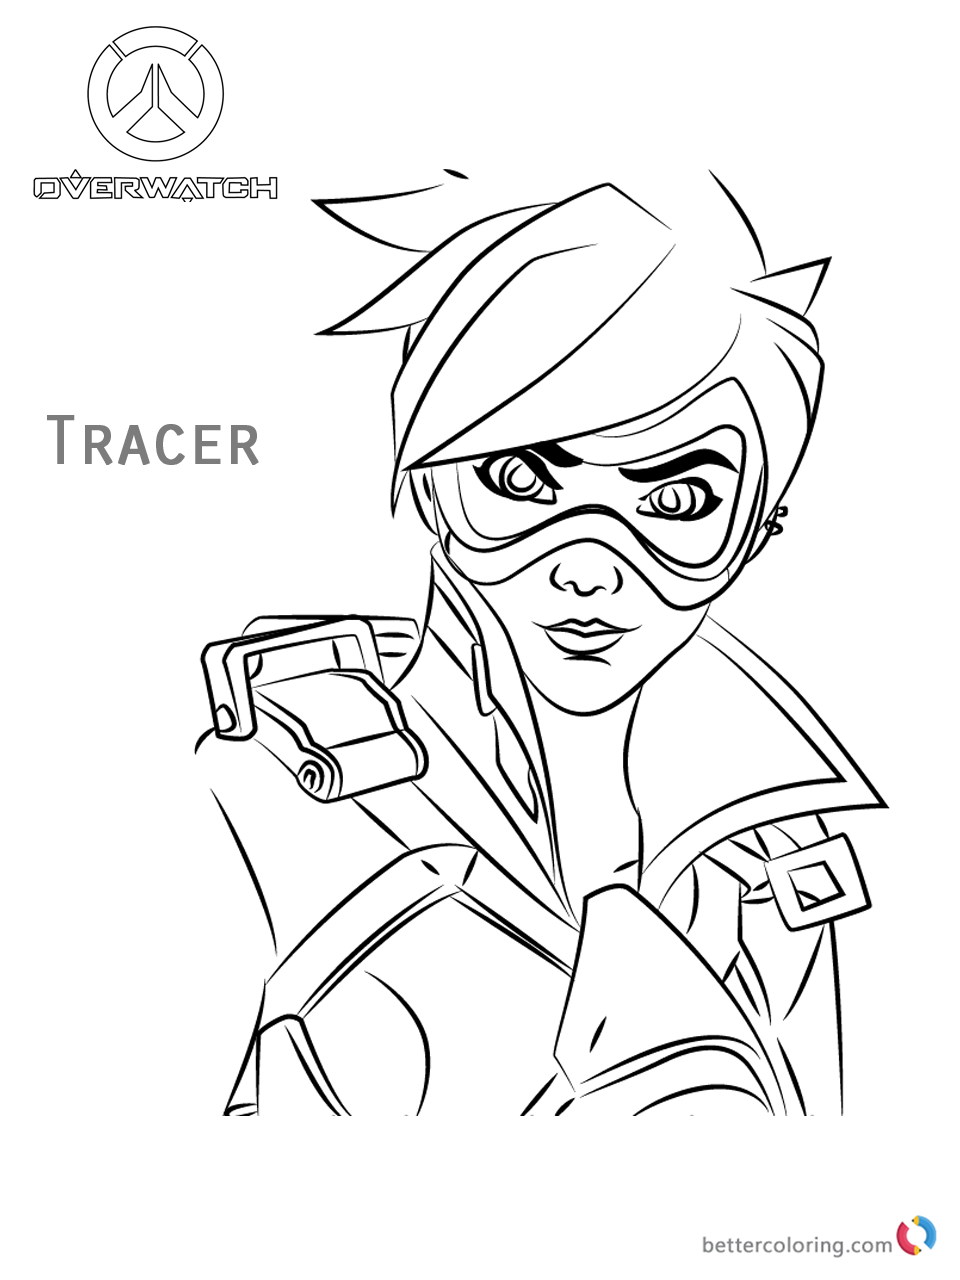 tracer face from overwatch coloring pages